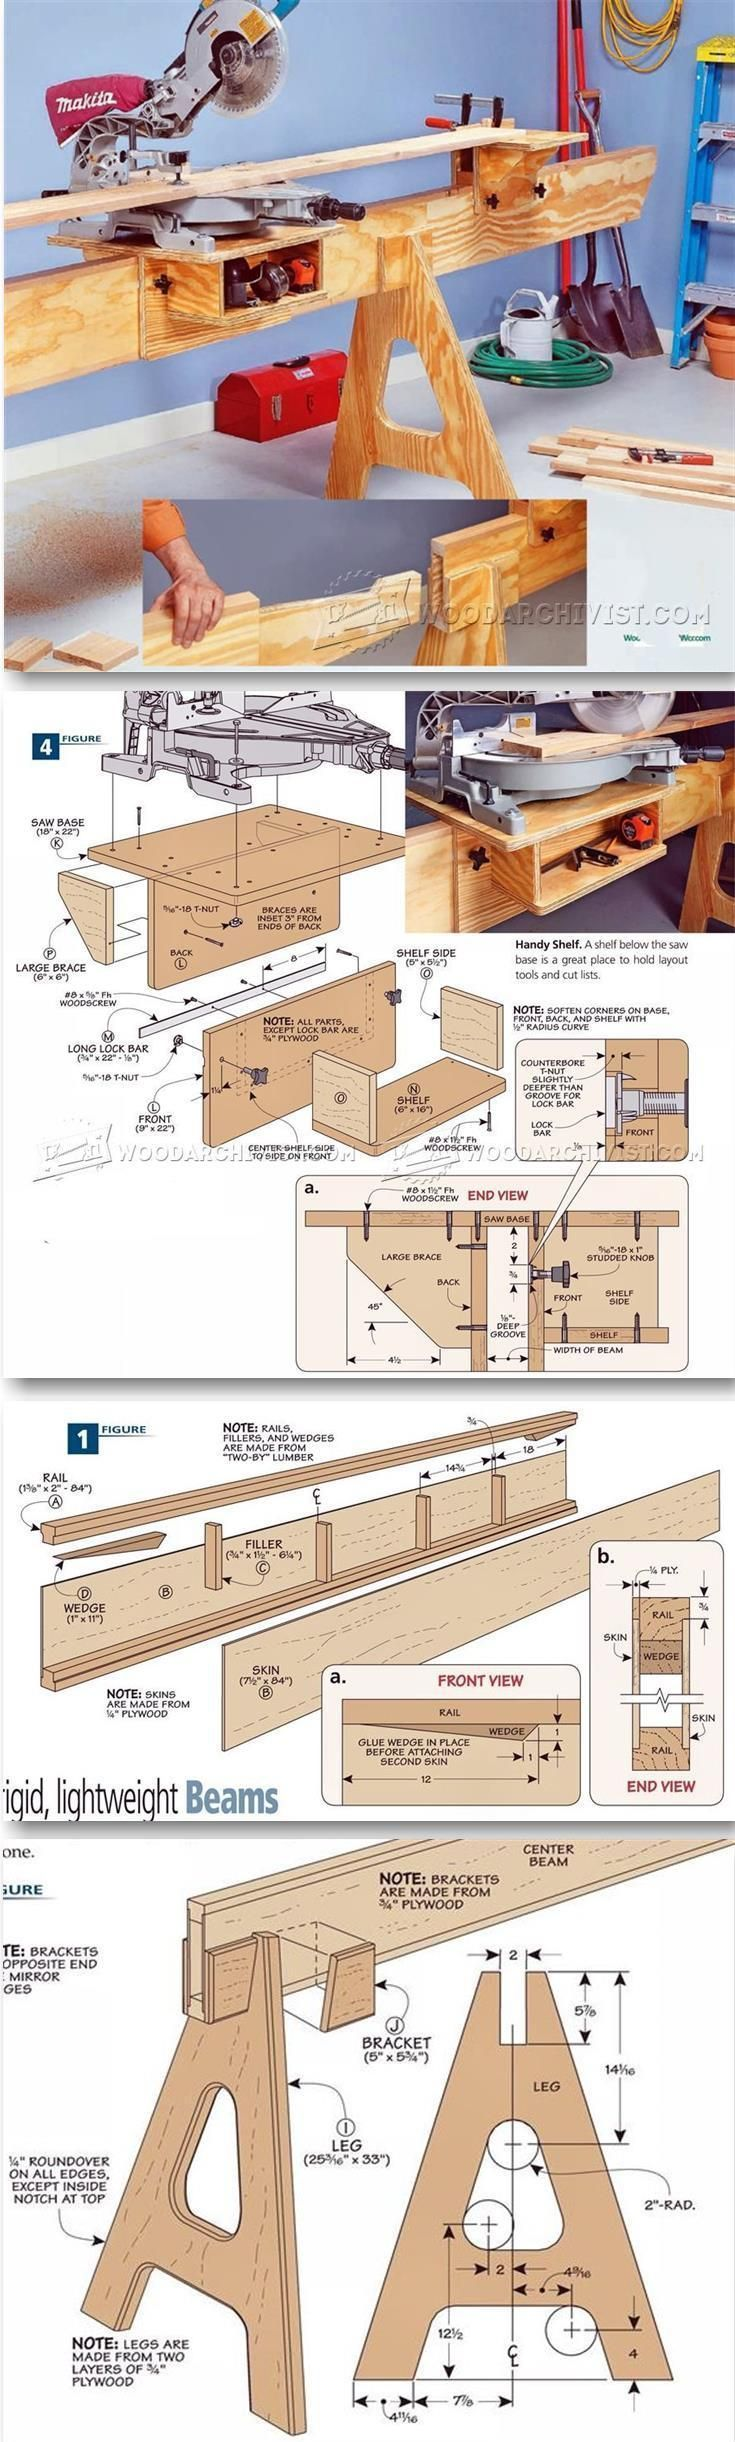 Folding Miter Saw Stand Plans - Miter Saw Tips, Jigs and Fixtures | http://WoodArchivist.com?utm_content=buffer6f8c5&utm_medium=social&utm_source=pinterest.com&utm_campaign=buffer